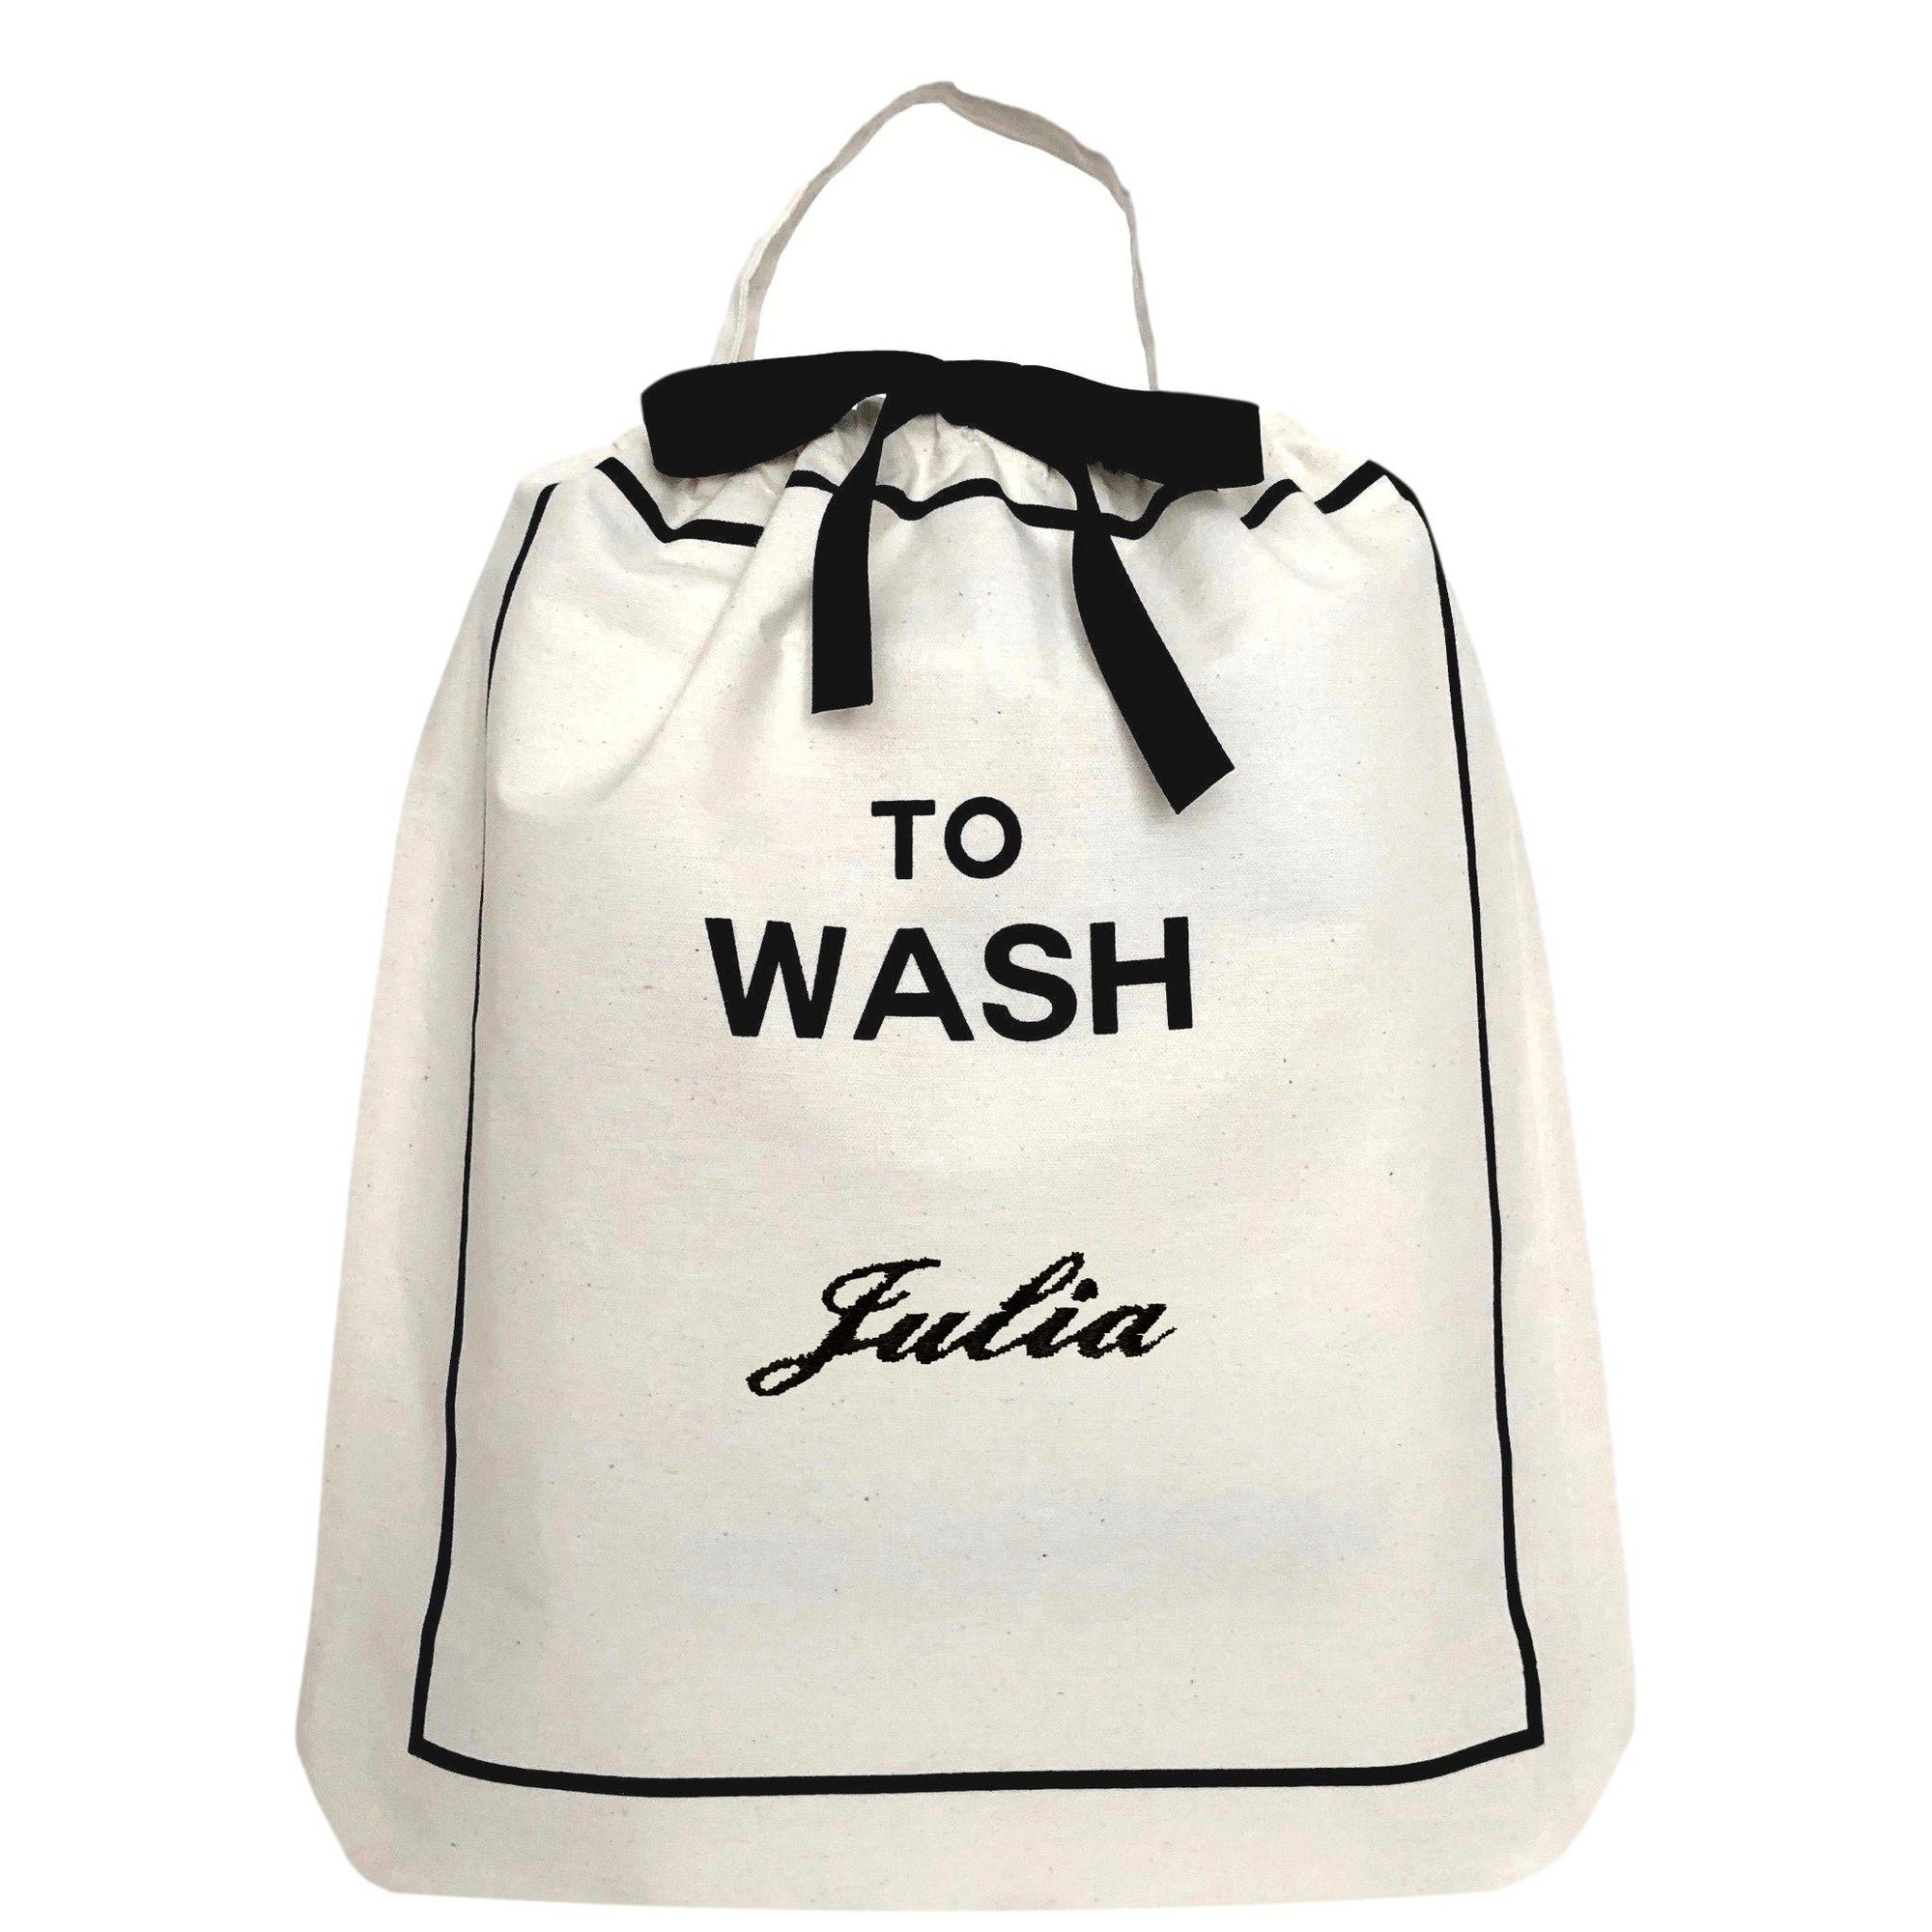 To Wash Laundry Bag - Bag-all Paris